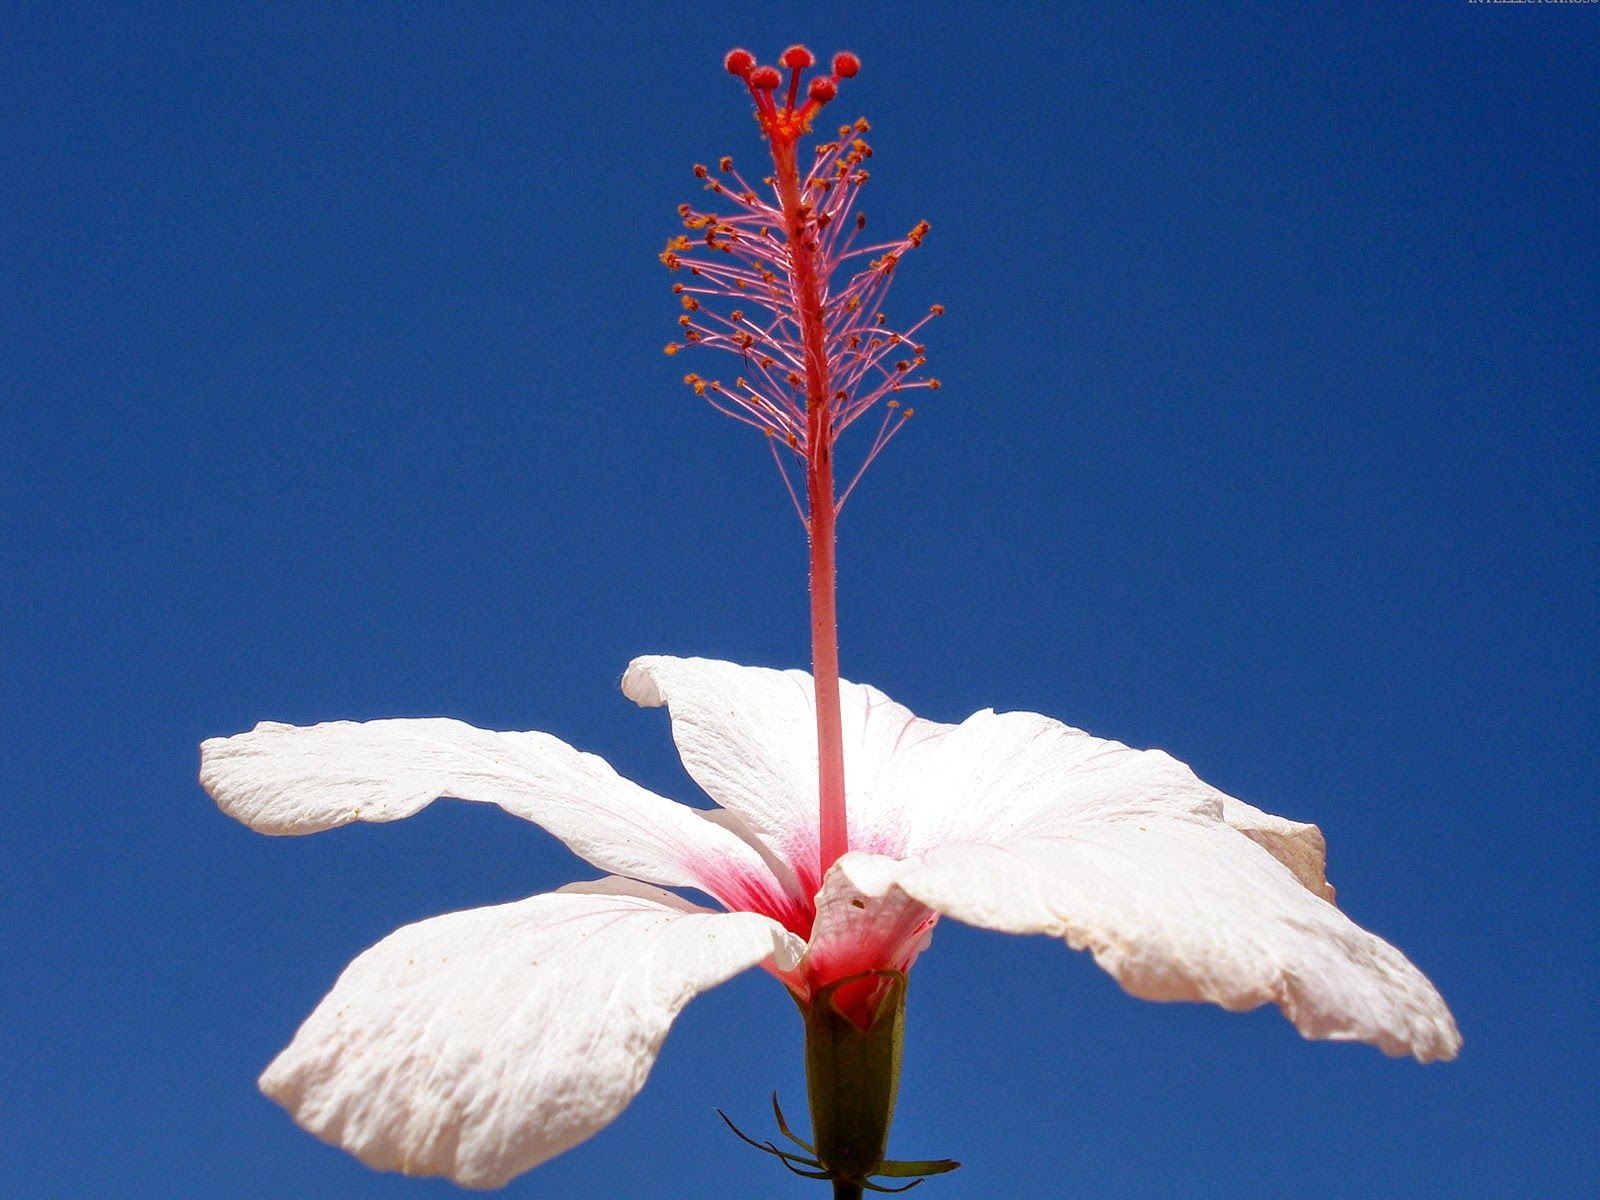 Picture of single white flower hd pictures hd pictures picture of single white flower hd pictures izmirmasajfo